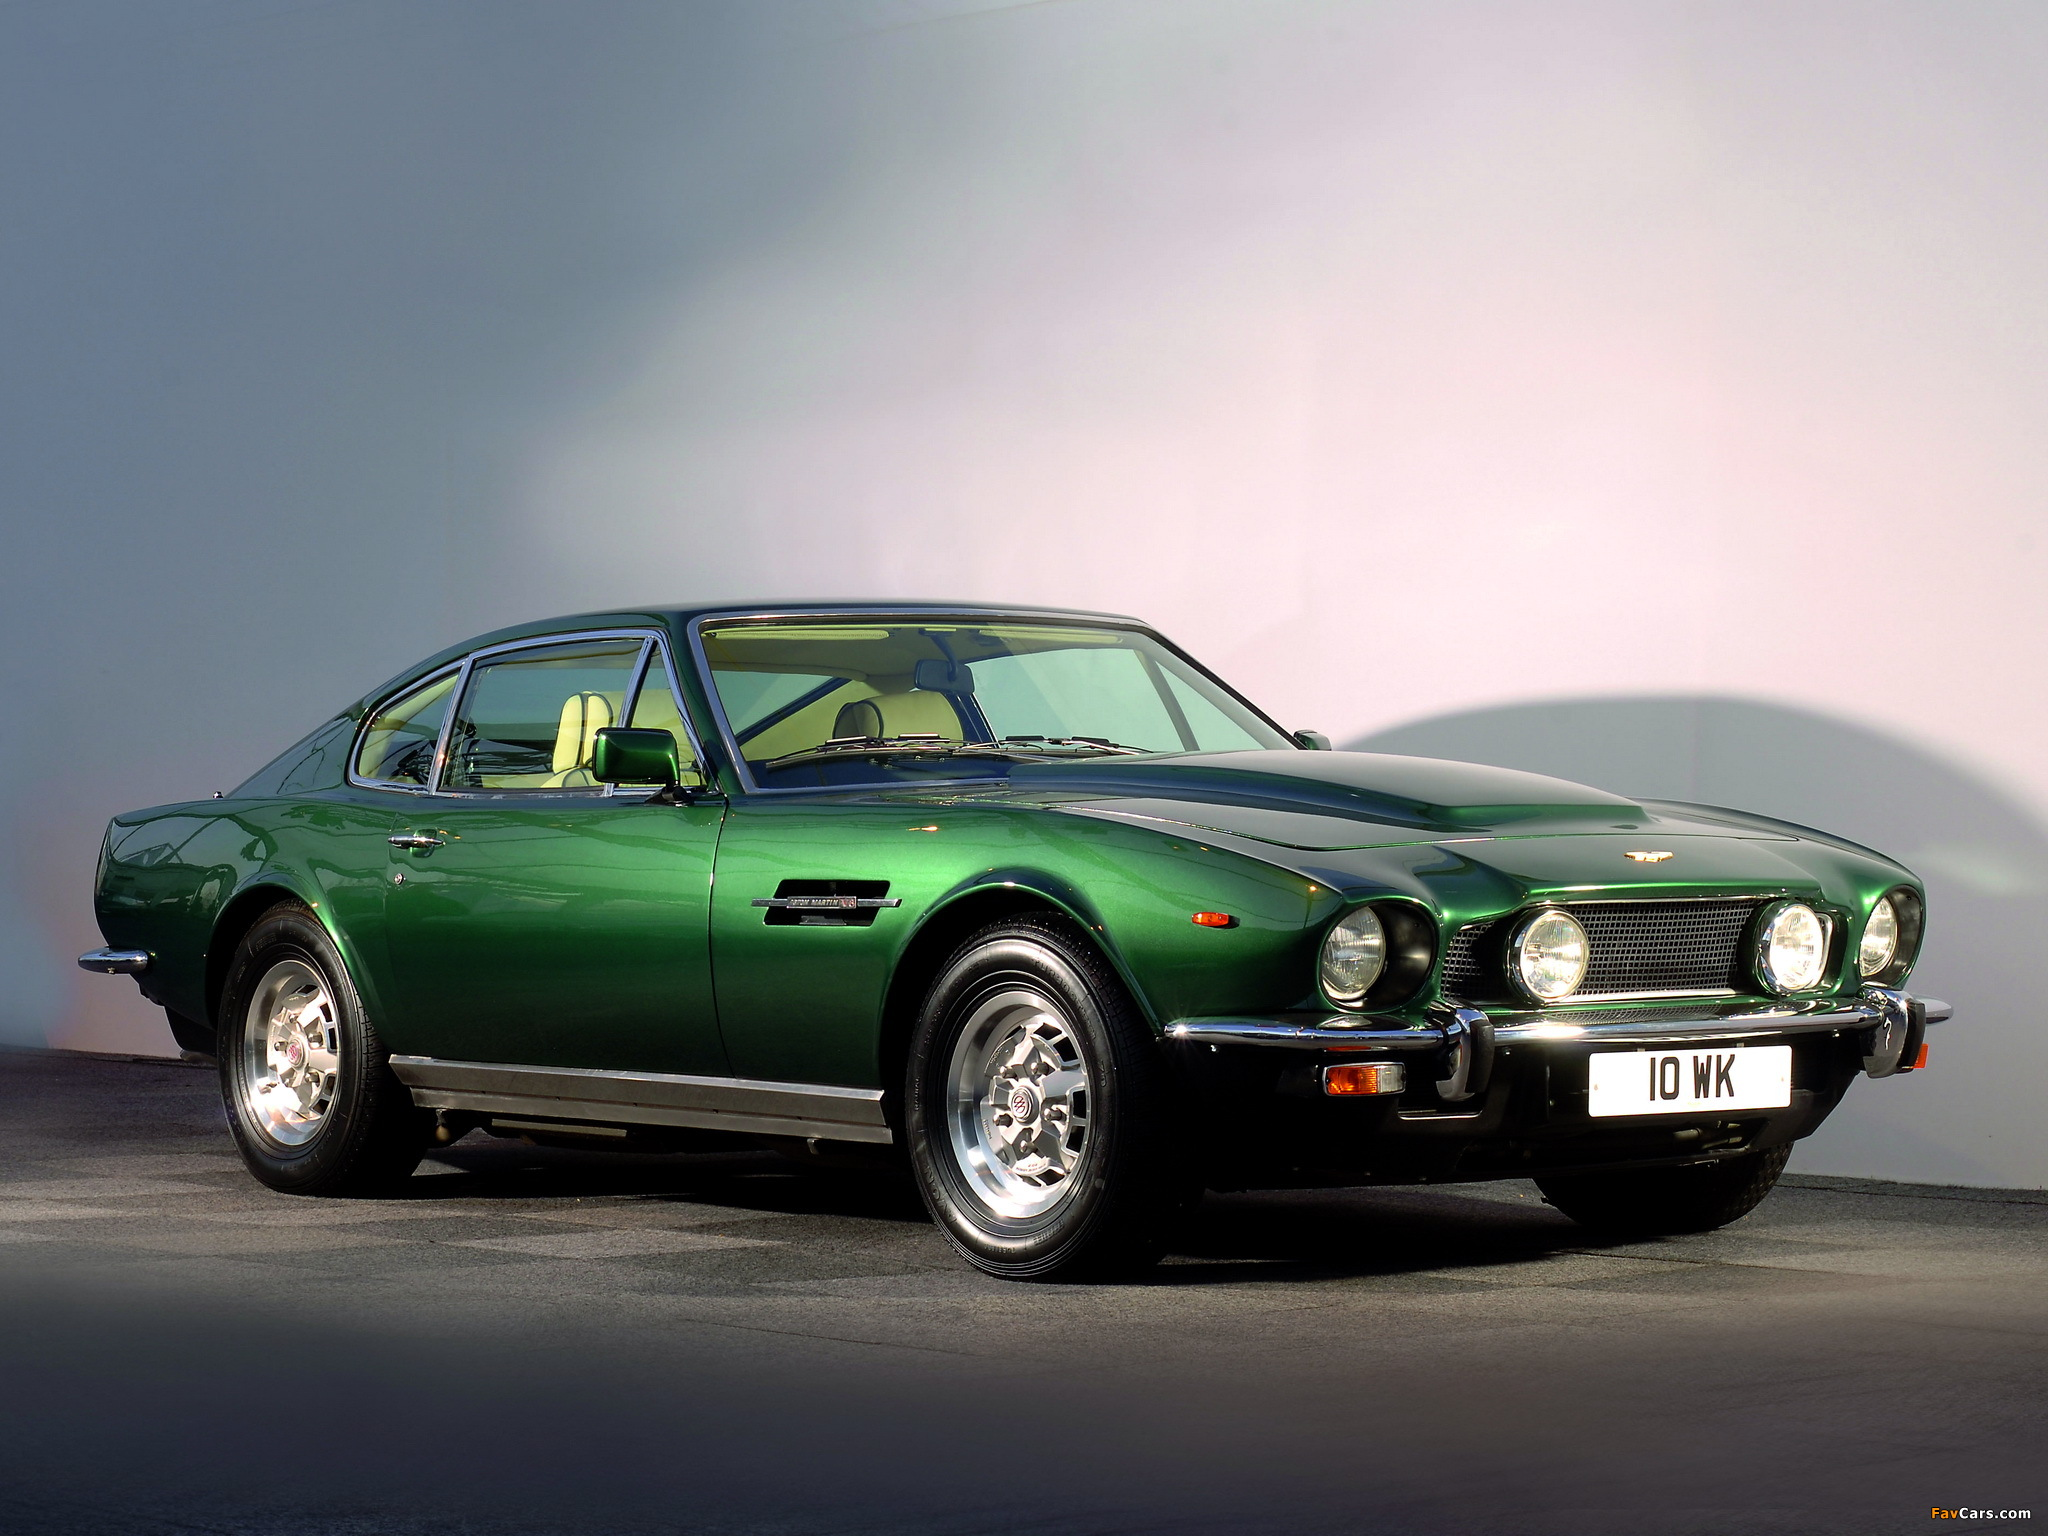 Aston Martin V Vantage HD Wallpaper Background Image X - Aston martin v8